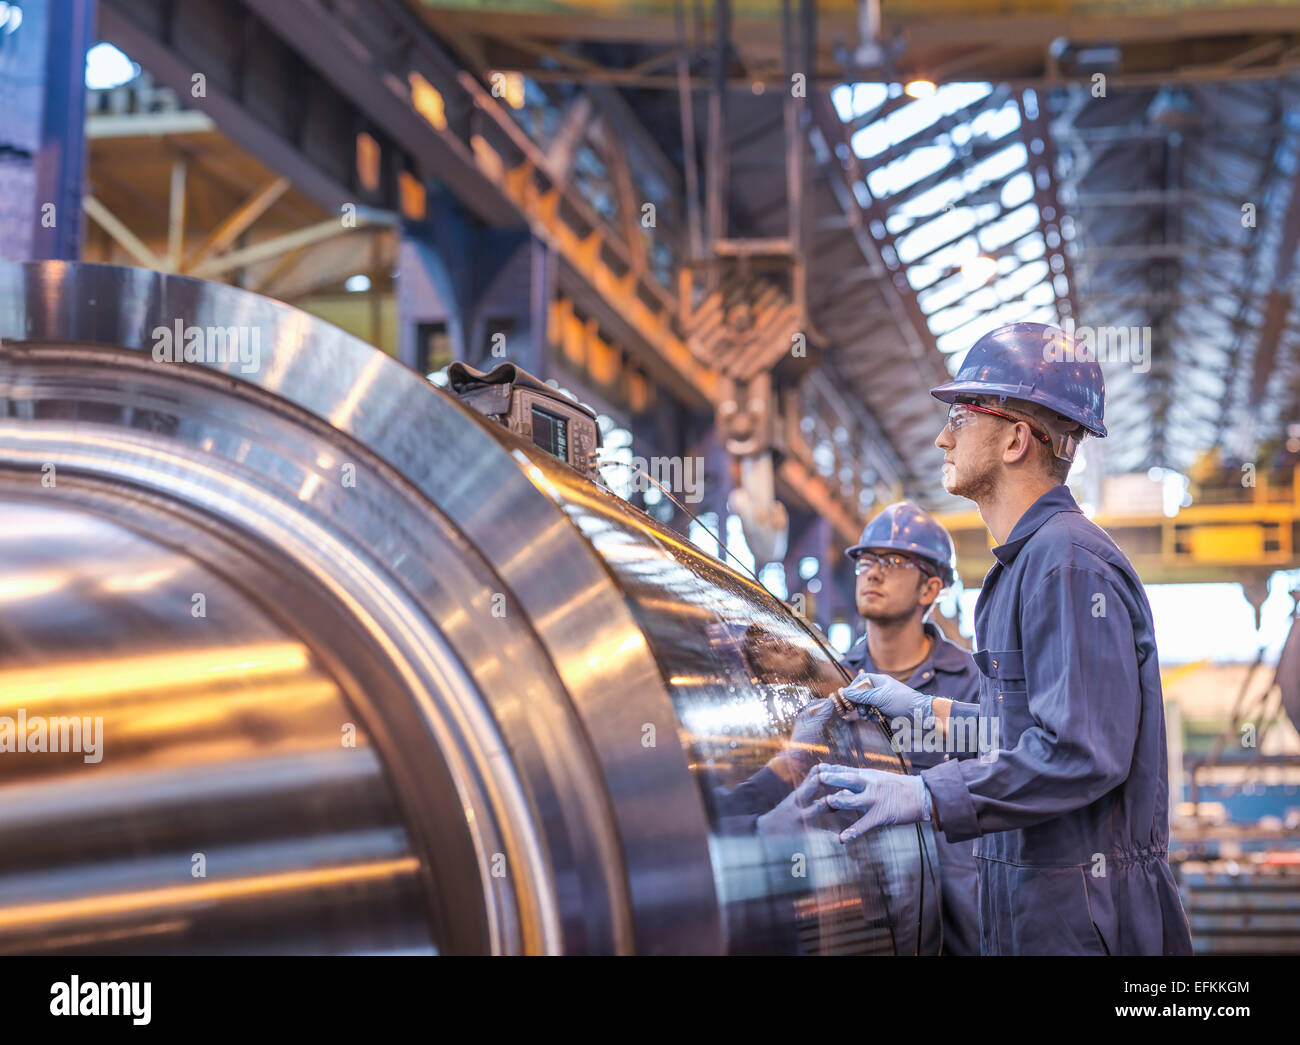 Engineers using ultrasound to check steel part in engineering factory - Stock Image